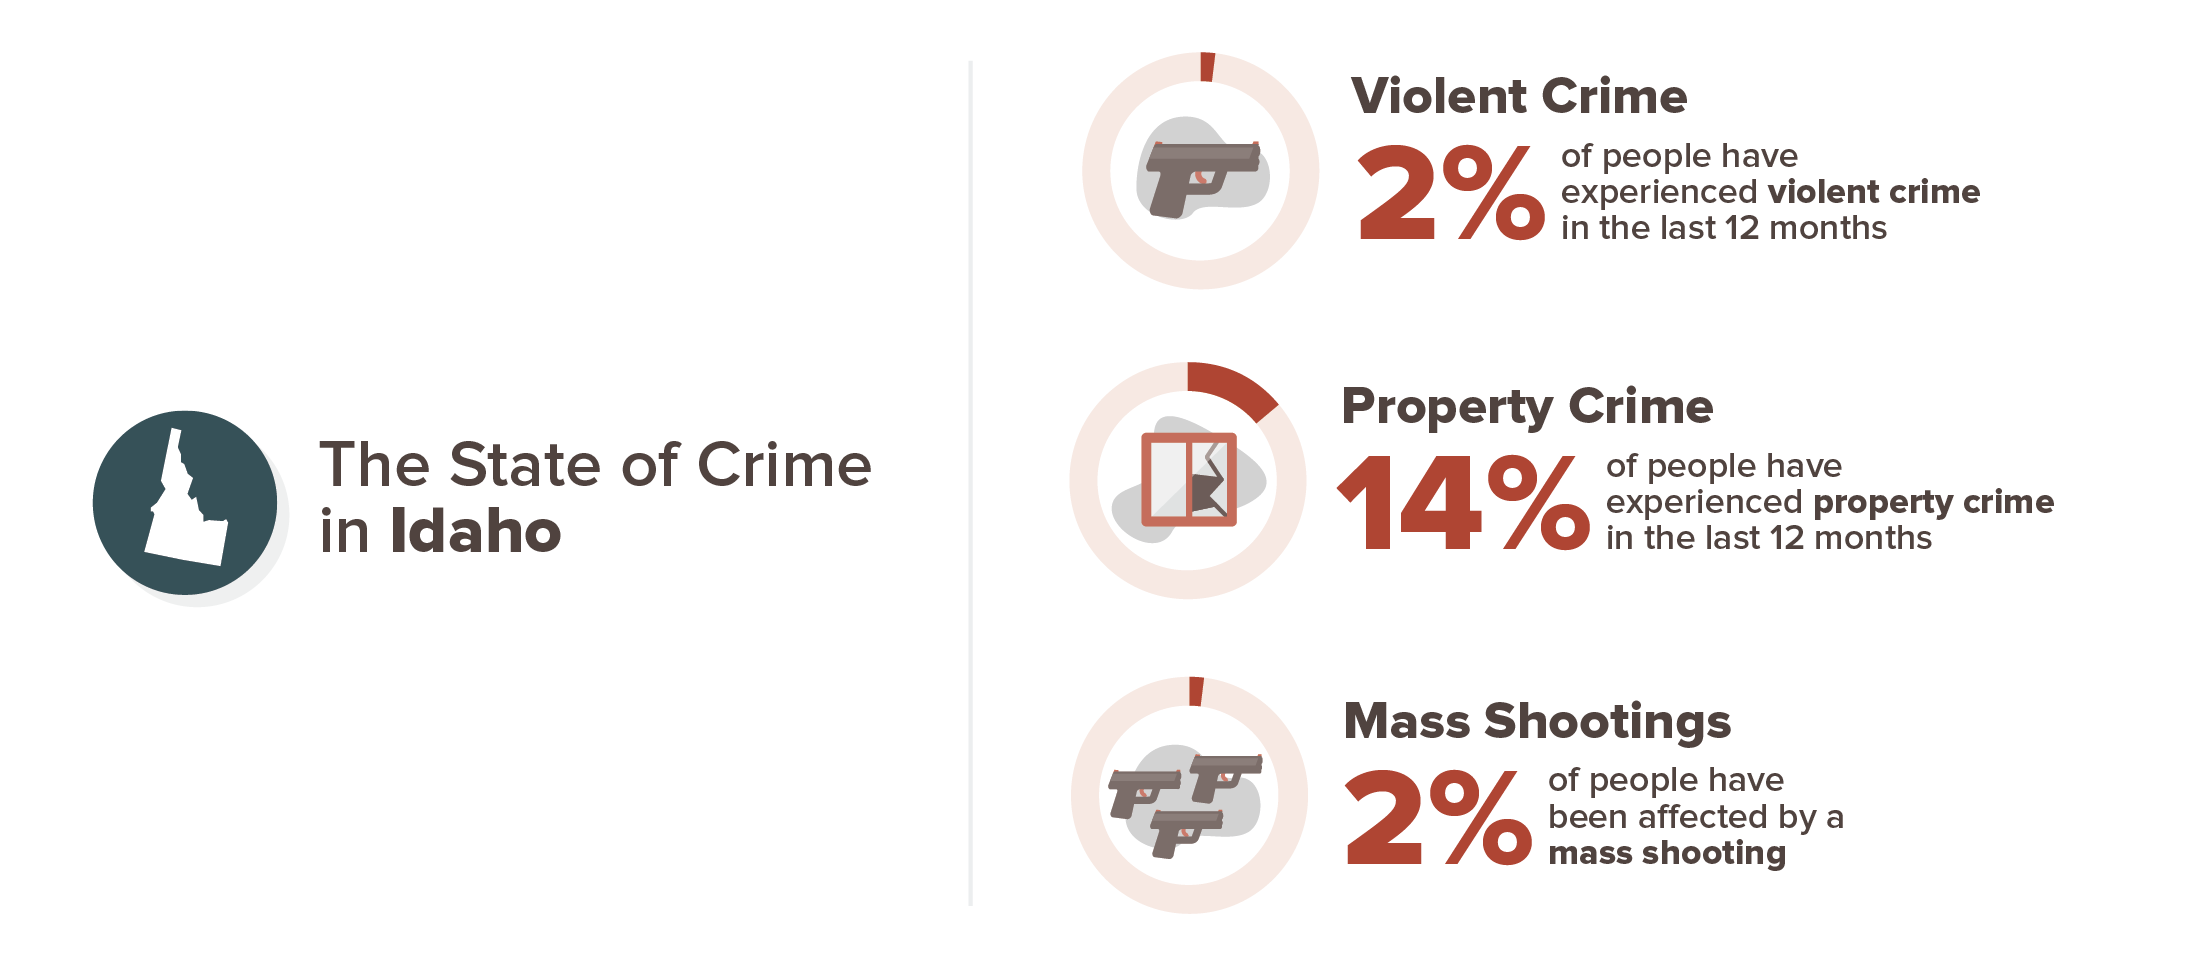 Arizona crime experience infographic; 2% violent crime, 14% property crime, 2% mass shooting